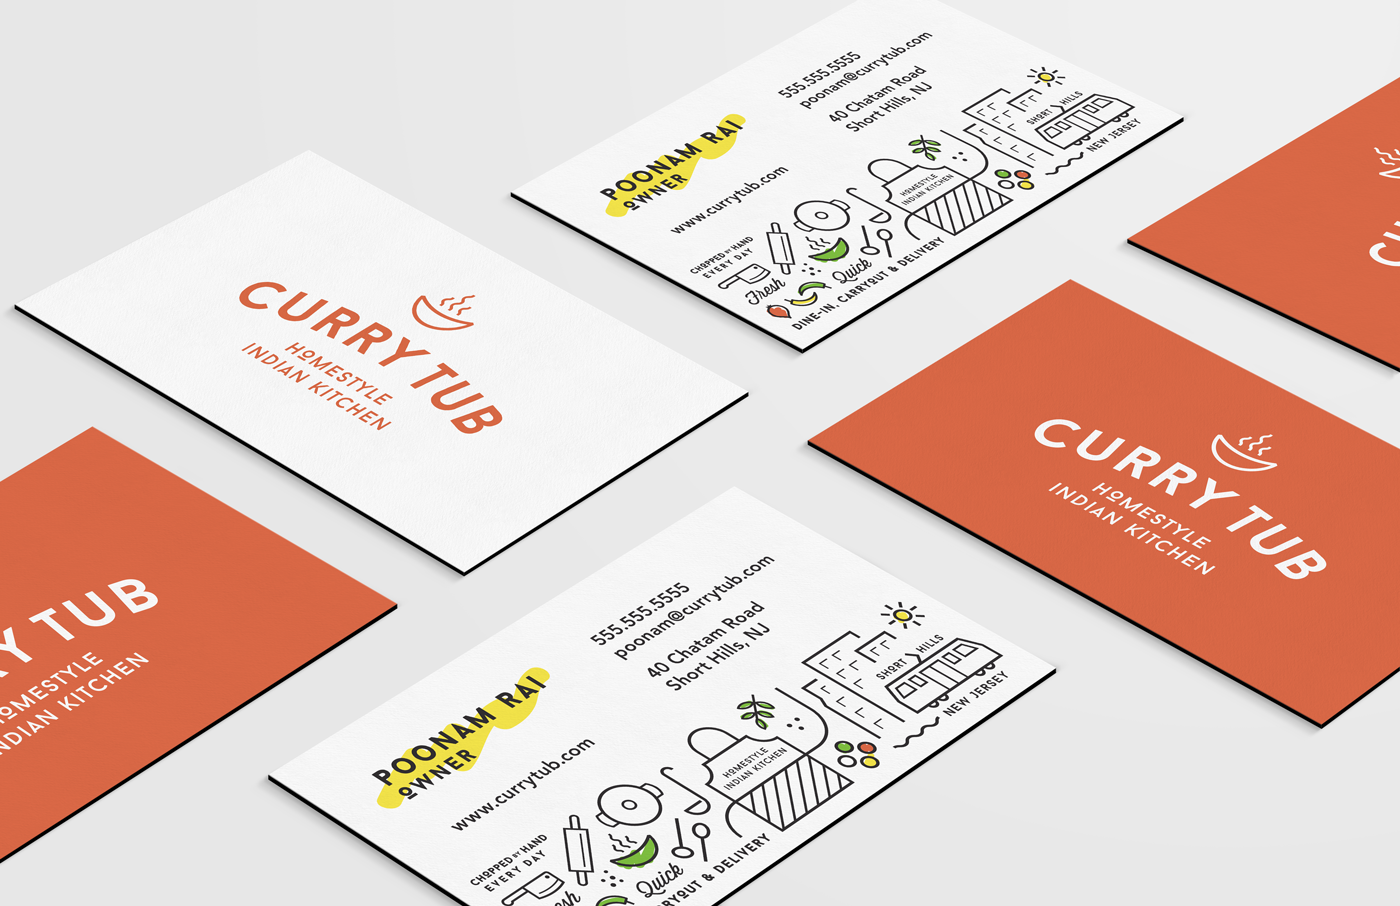 Curry-Tub-Cards